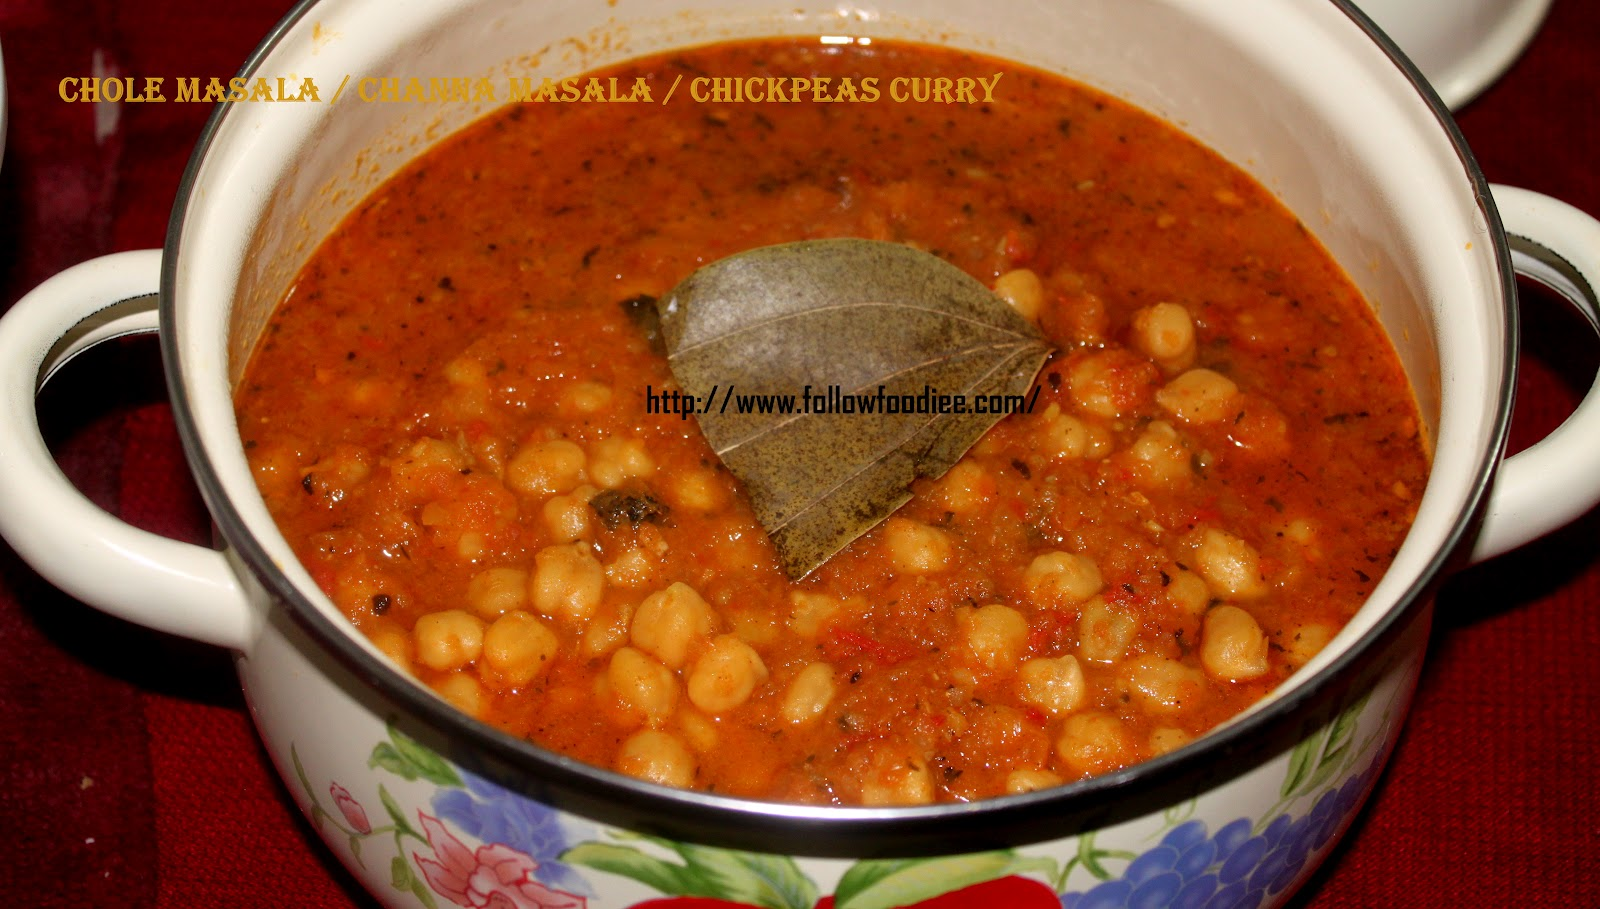 Chickpea cooked with fragrent spices to make this masala